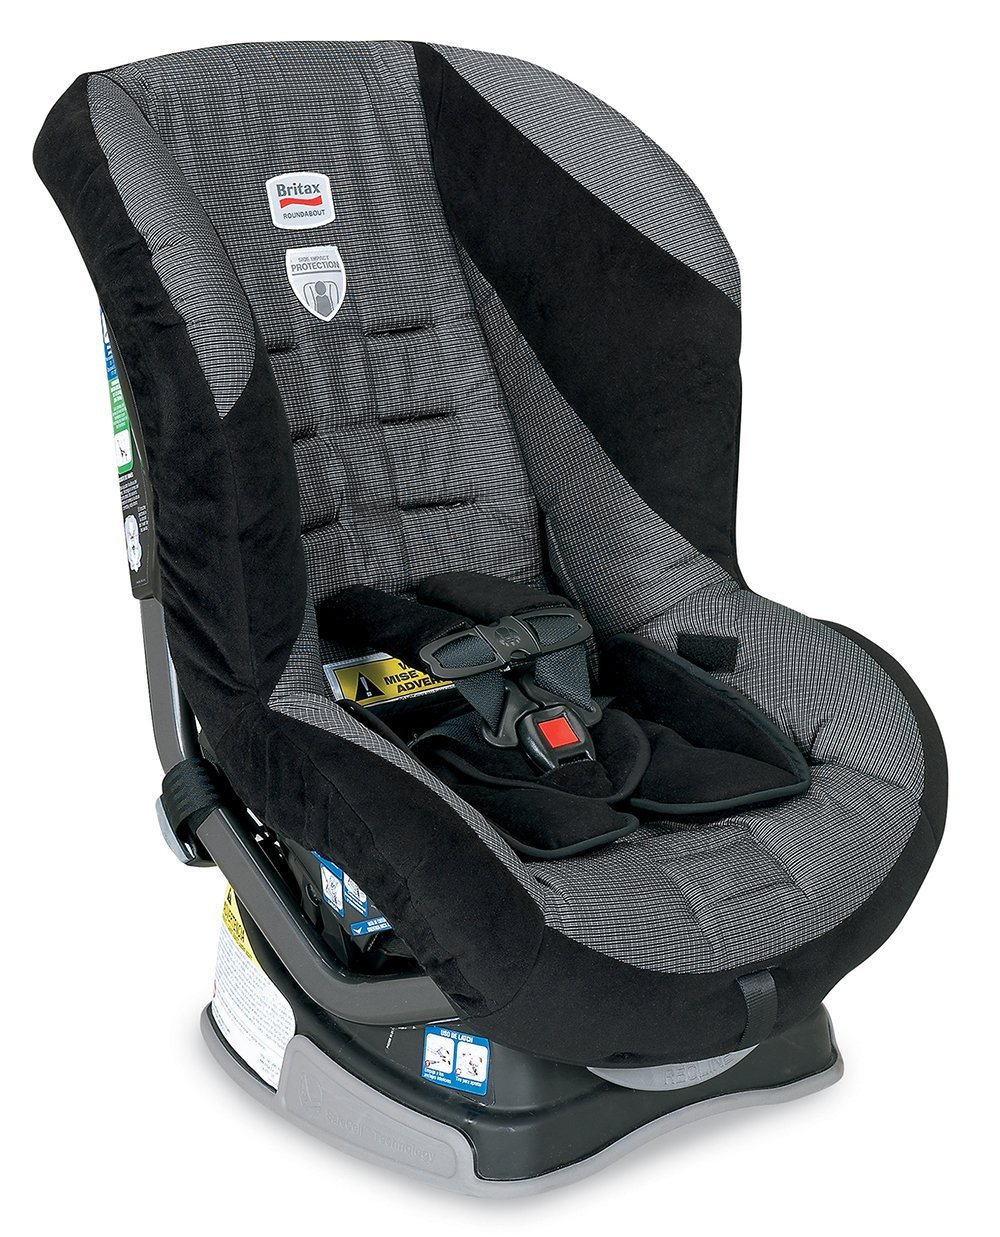 Britax Roundabout 55 Review Continuing The Legacy Carseatblog,Rice Balls Dessert